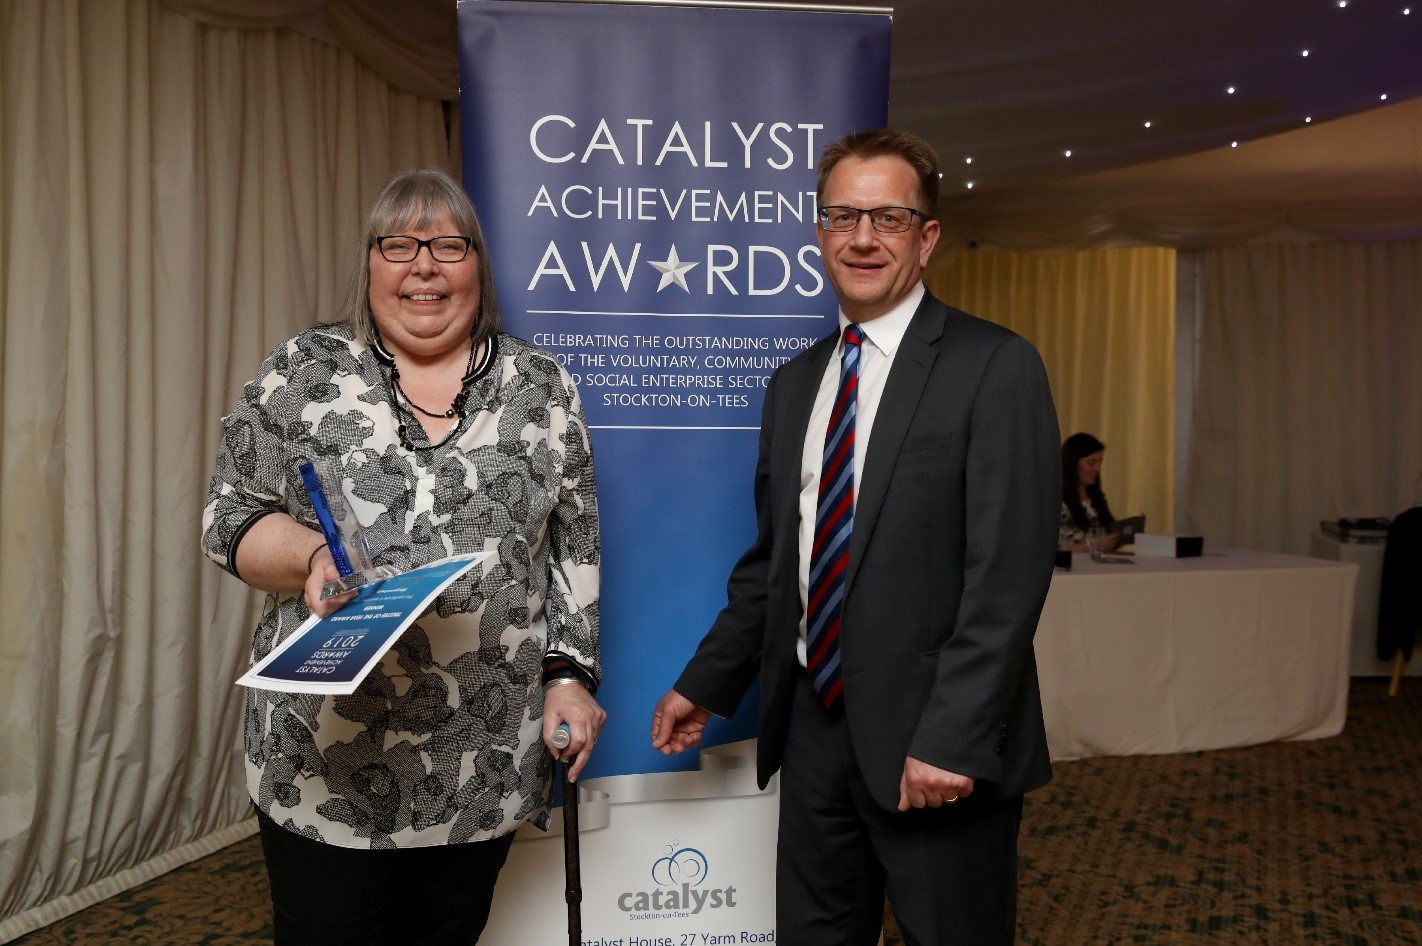 Team Stockton at the Catalyst Achievement Awards